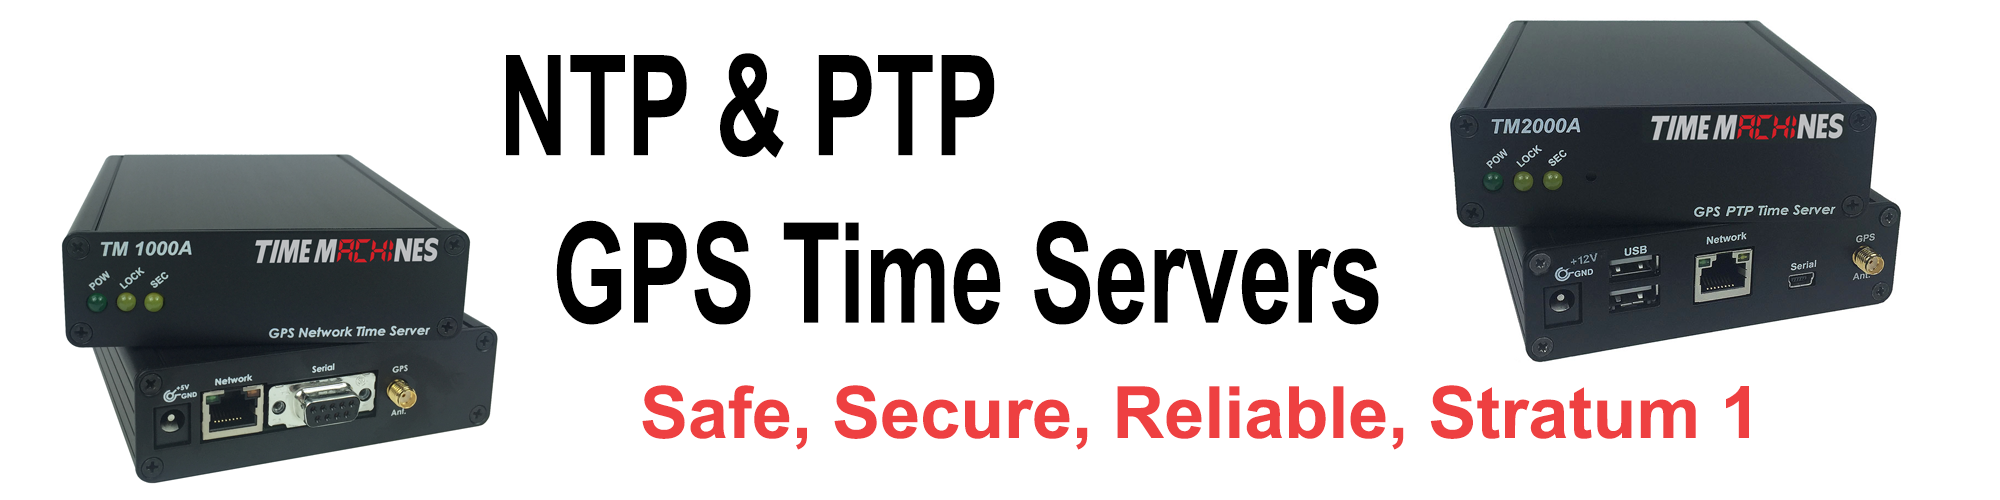 GPS Timeservers - Network Time Servers from TimeMachines